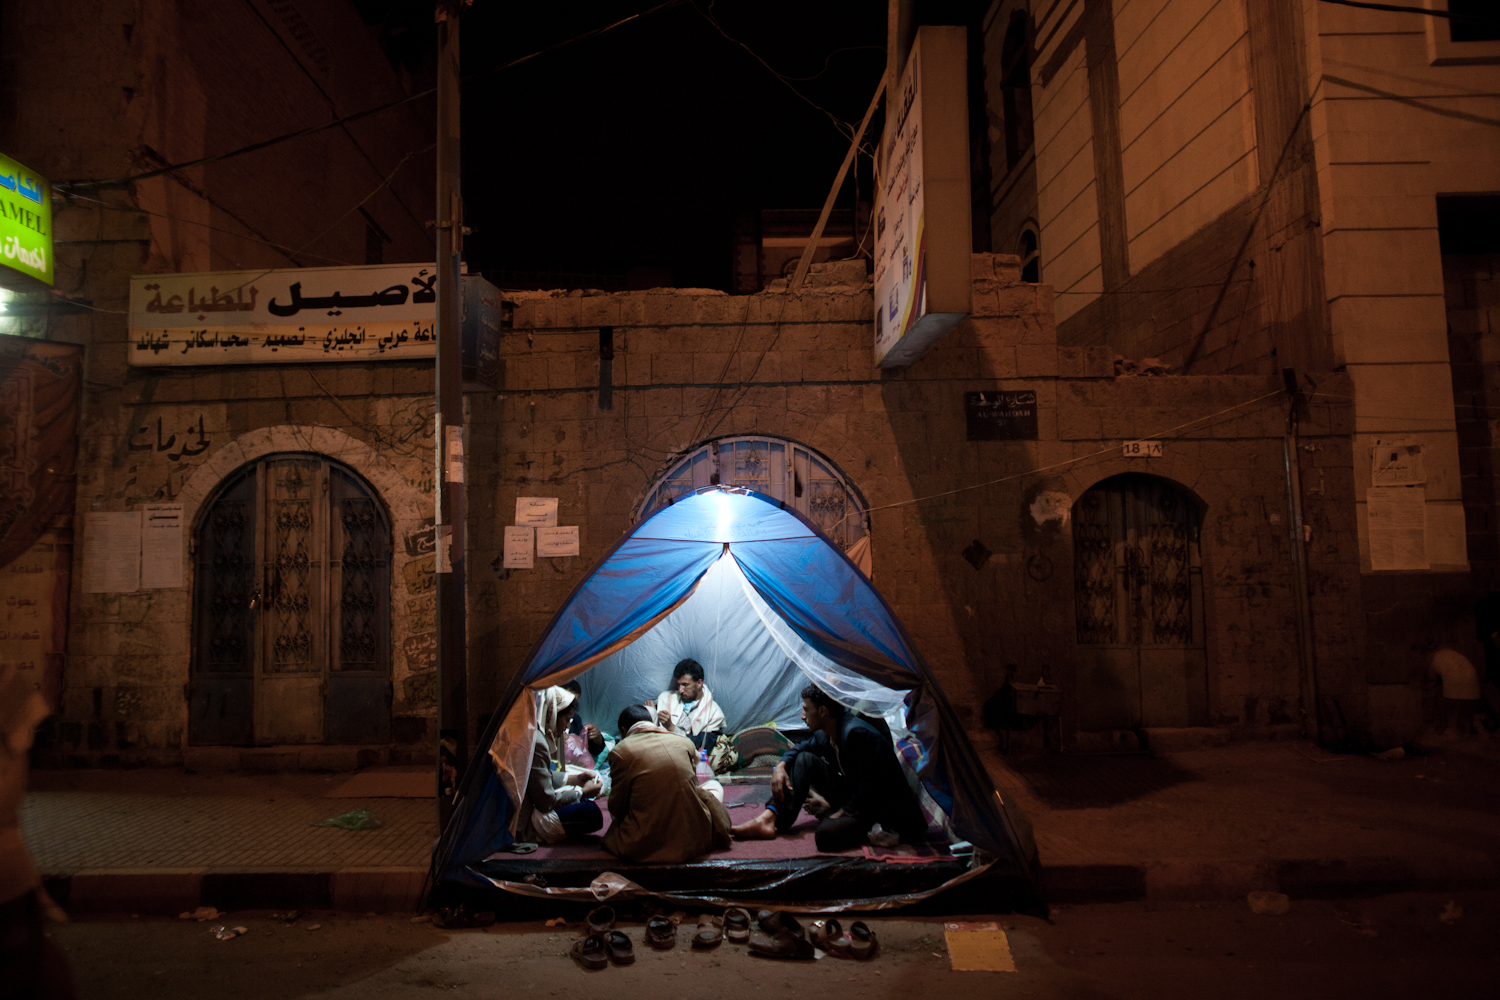 Anti-government protesters camp out near the University of Sana on March 13, 2011 in Sana, Yemen. Thousands of Yemenis have been protesting around the country calling for the ouster of President Ali Abdullah Saleh, who has been in power for 32 years.